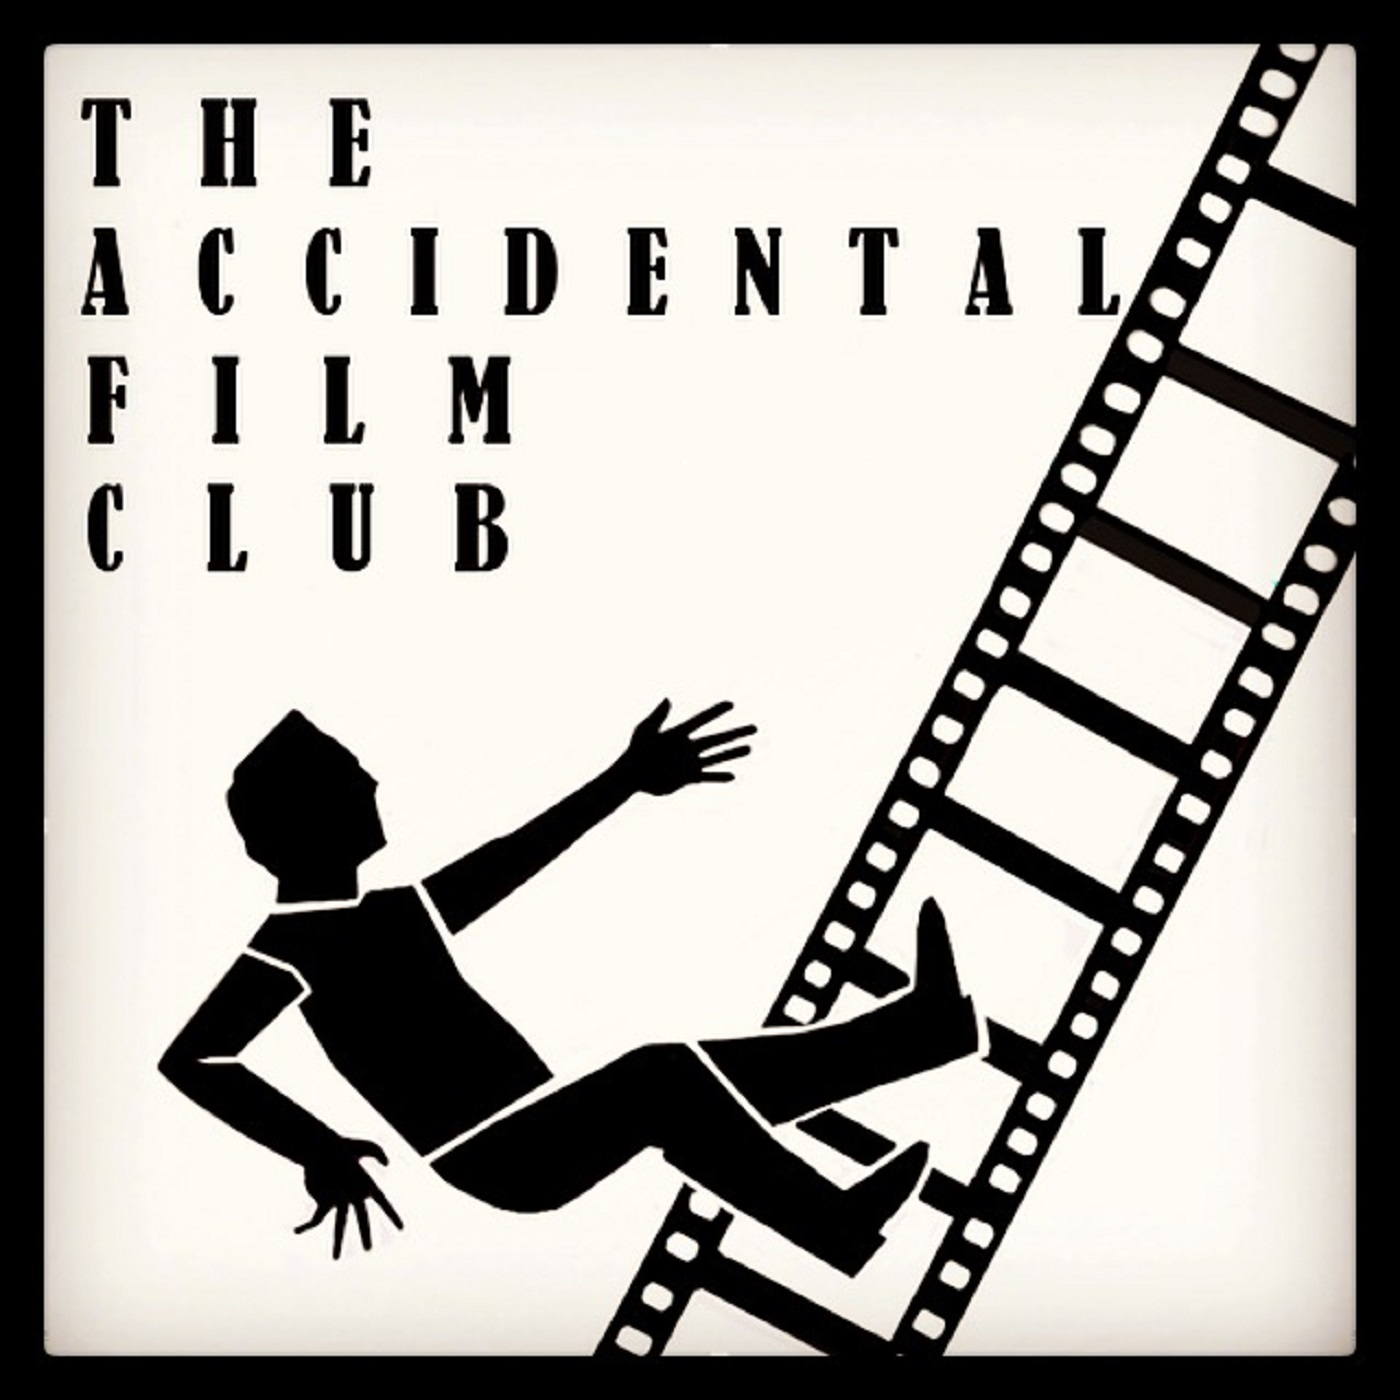 The Accidental Film Club